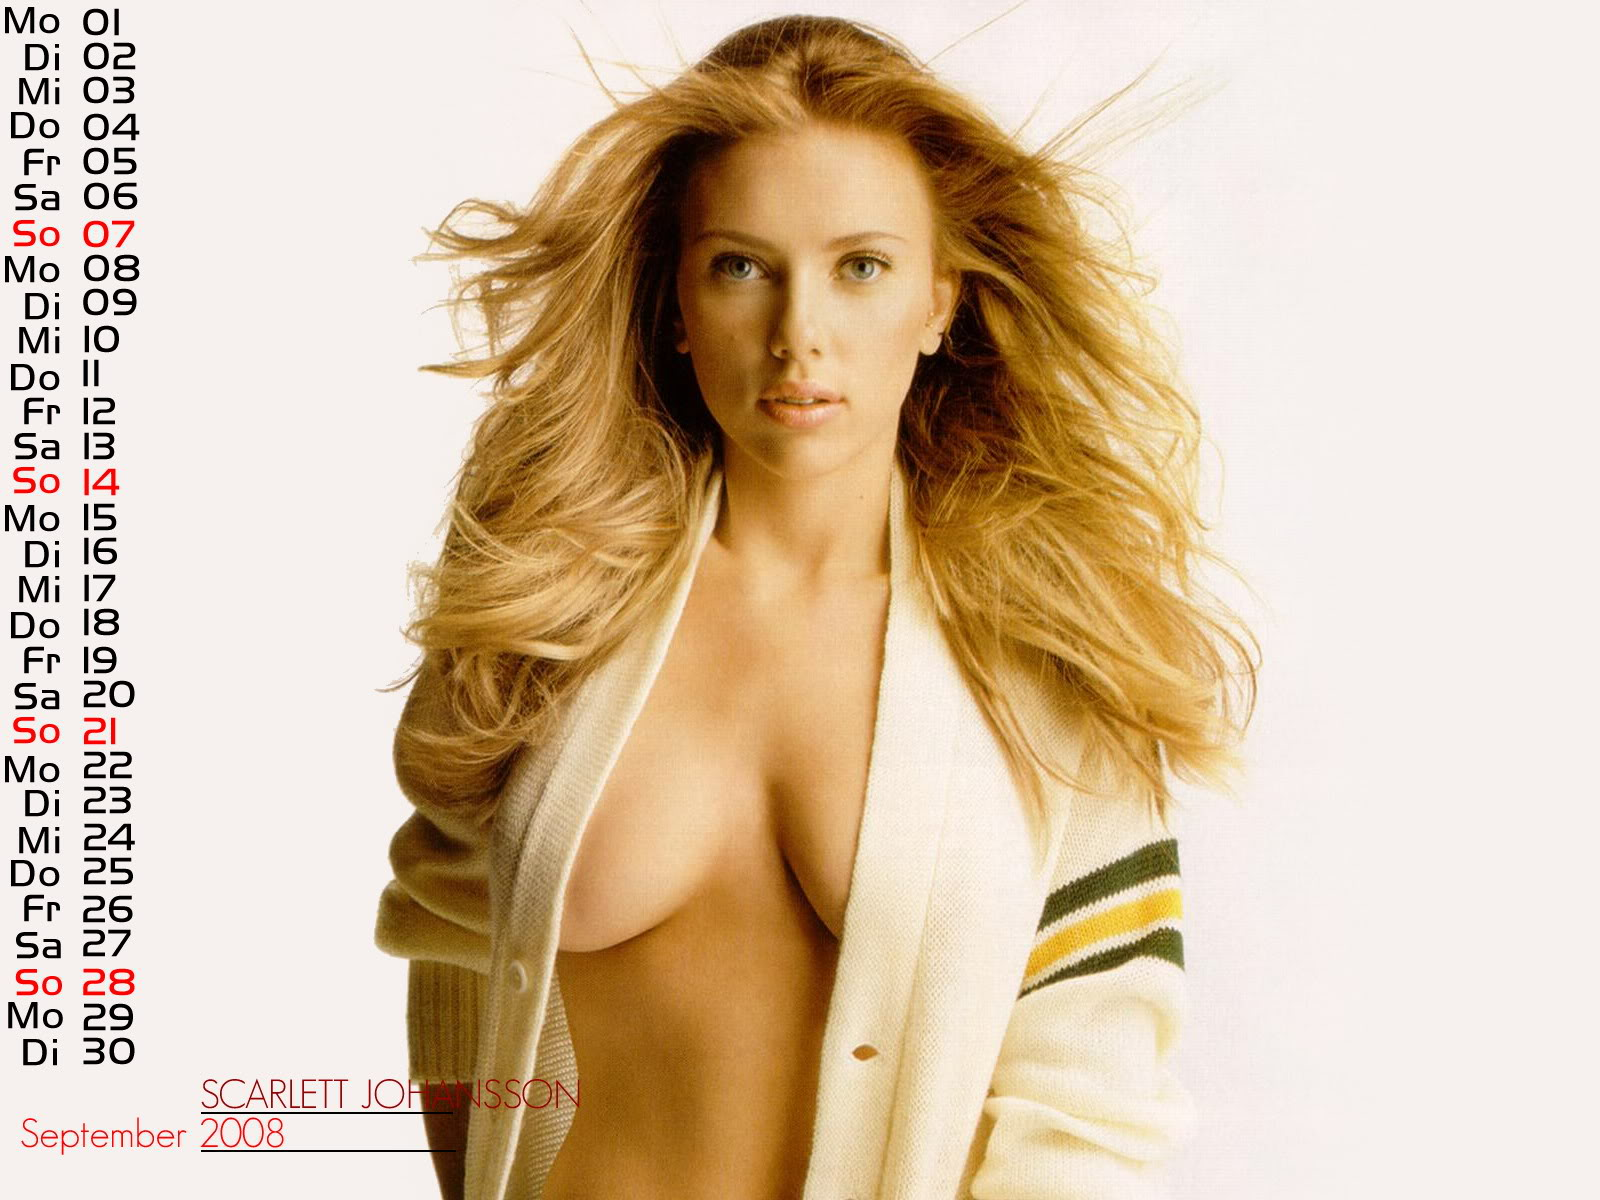 photo 12897_09_ScarlettJohansson_Septembe.jpg